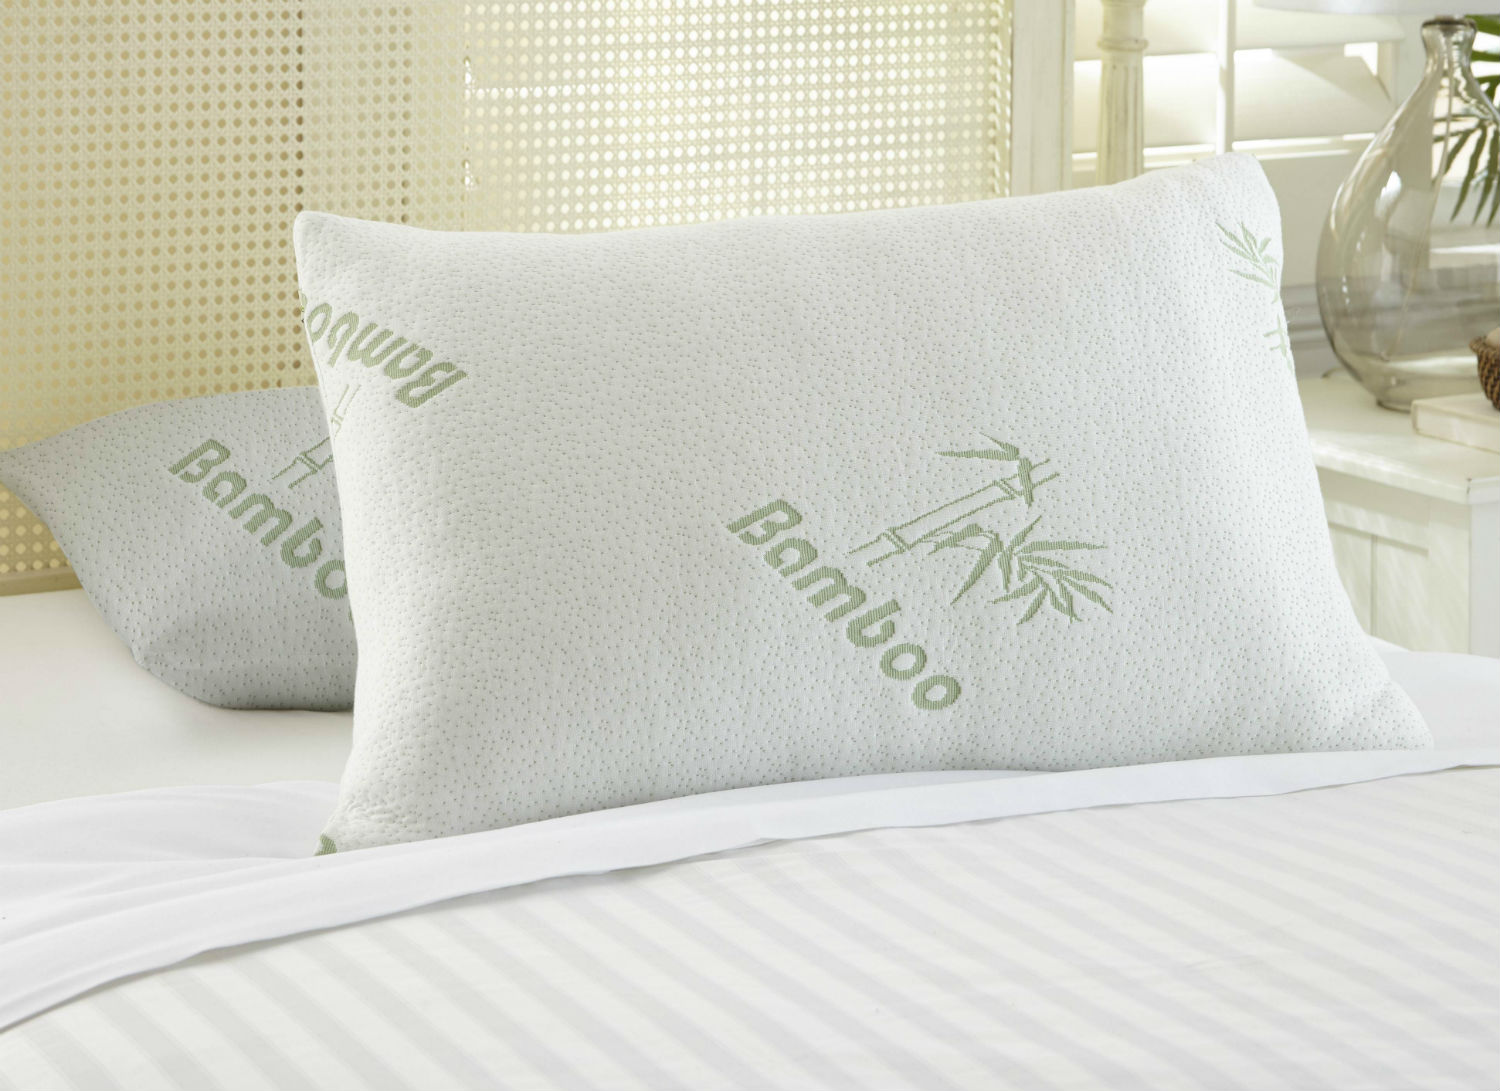 5 Best Bamboo Pillow Options for Hot Sleepers - Best Picks!